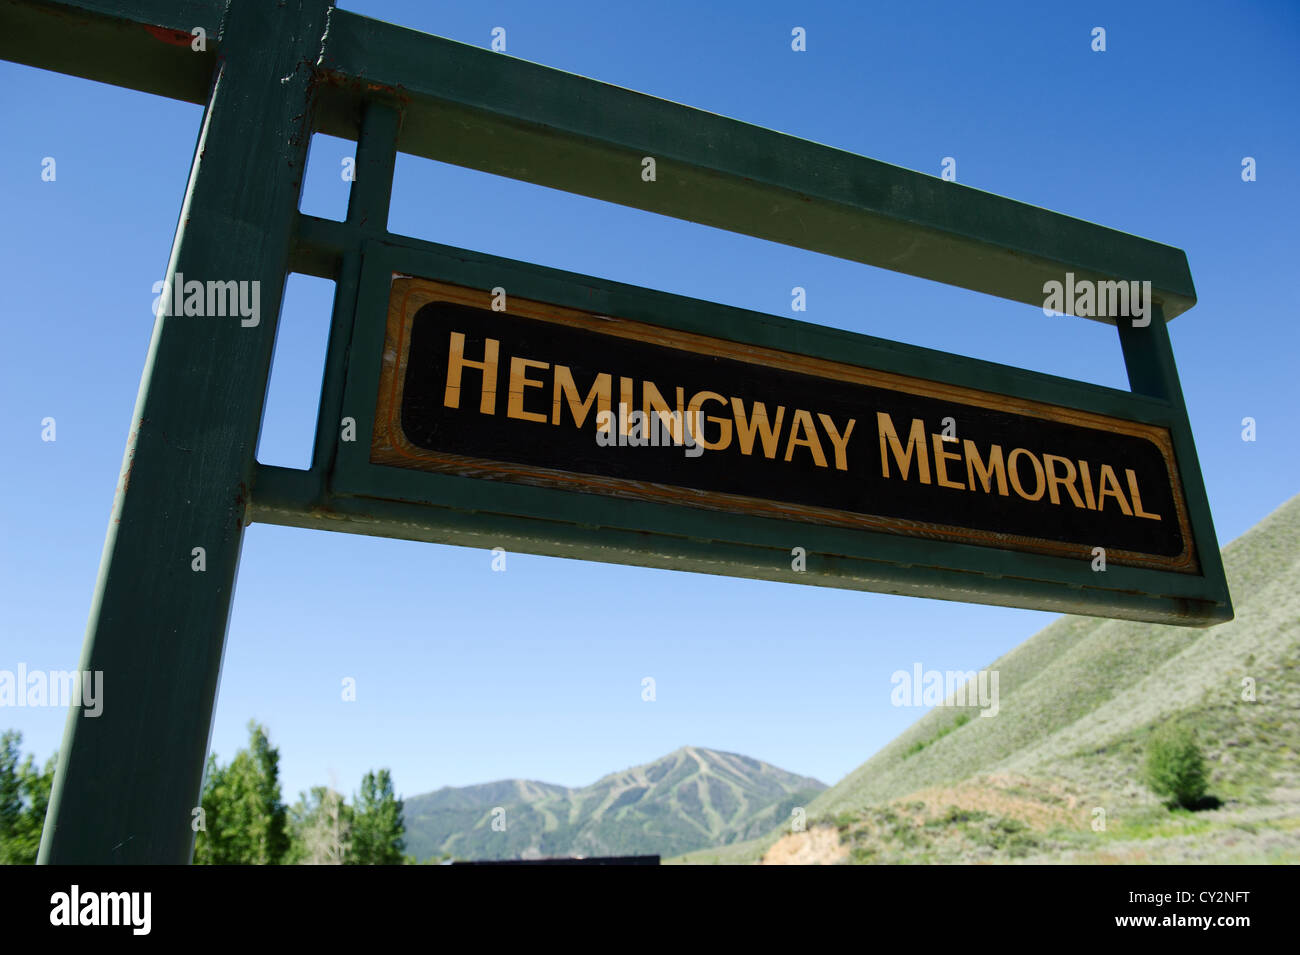 Hemingway Memorial near Sun Valley, Idaho, located on a section of Trail Creek - Stock Image